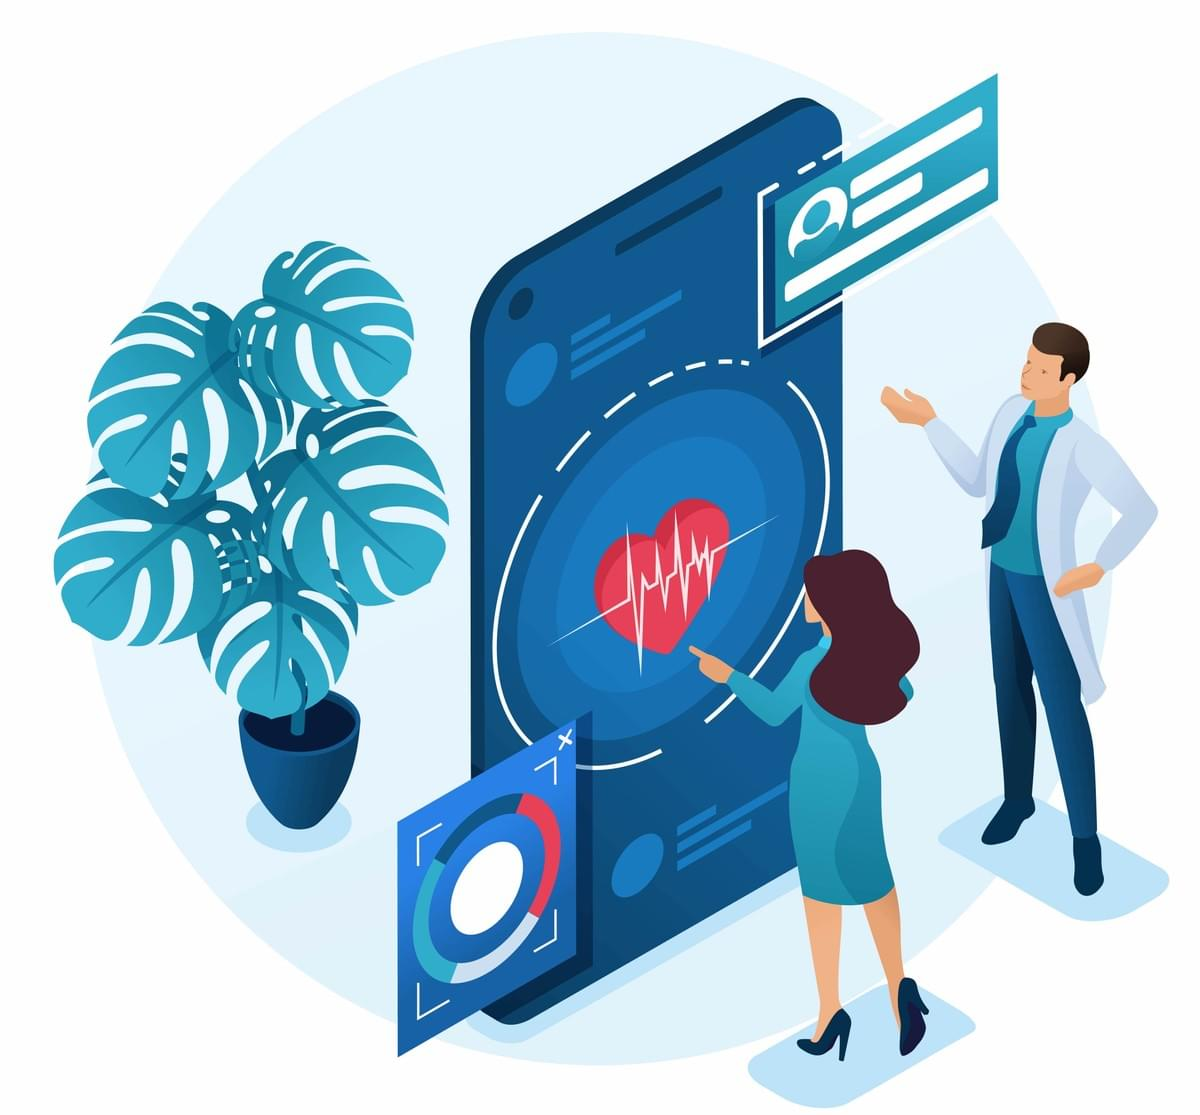 At medudoc we  believe that personalized, standardized and digitalized patient education is the key to a successful state-of-the-art doctor-patient communication.